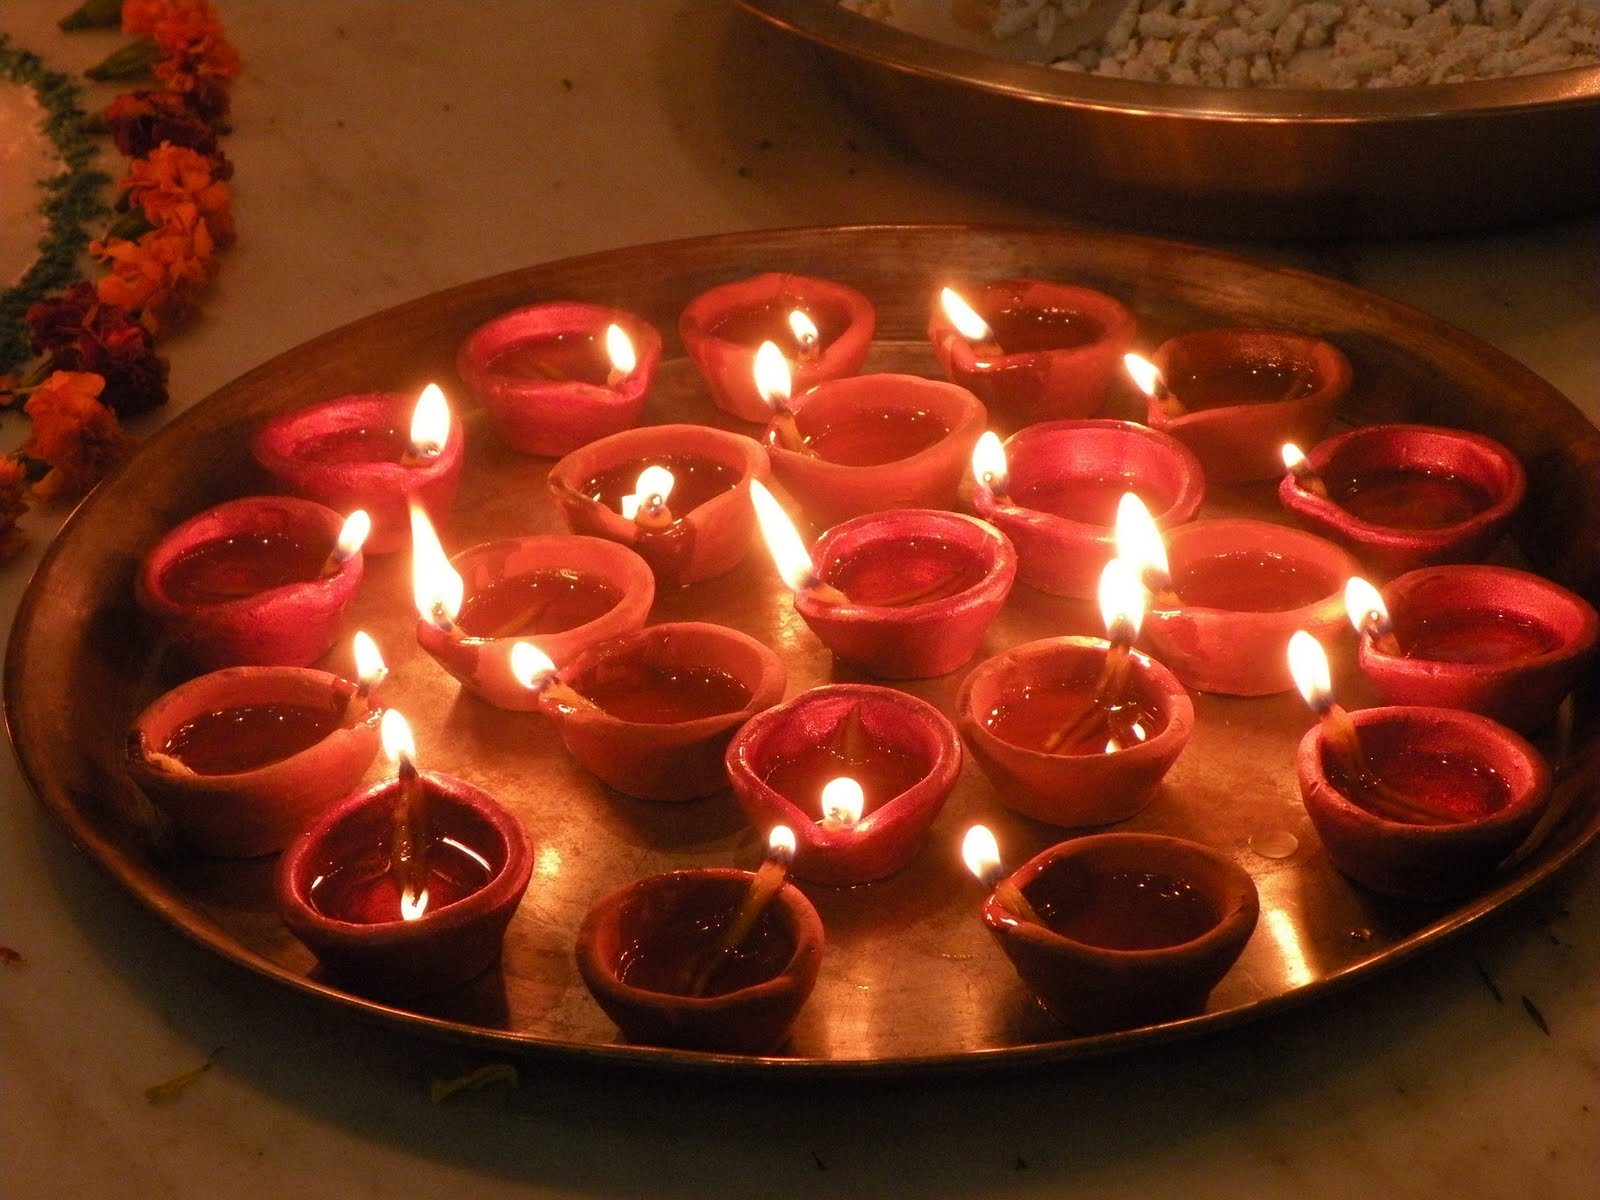 Lighting of Diya Or Lighting a Lamp